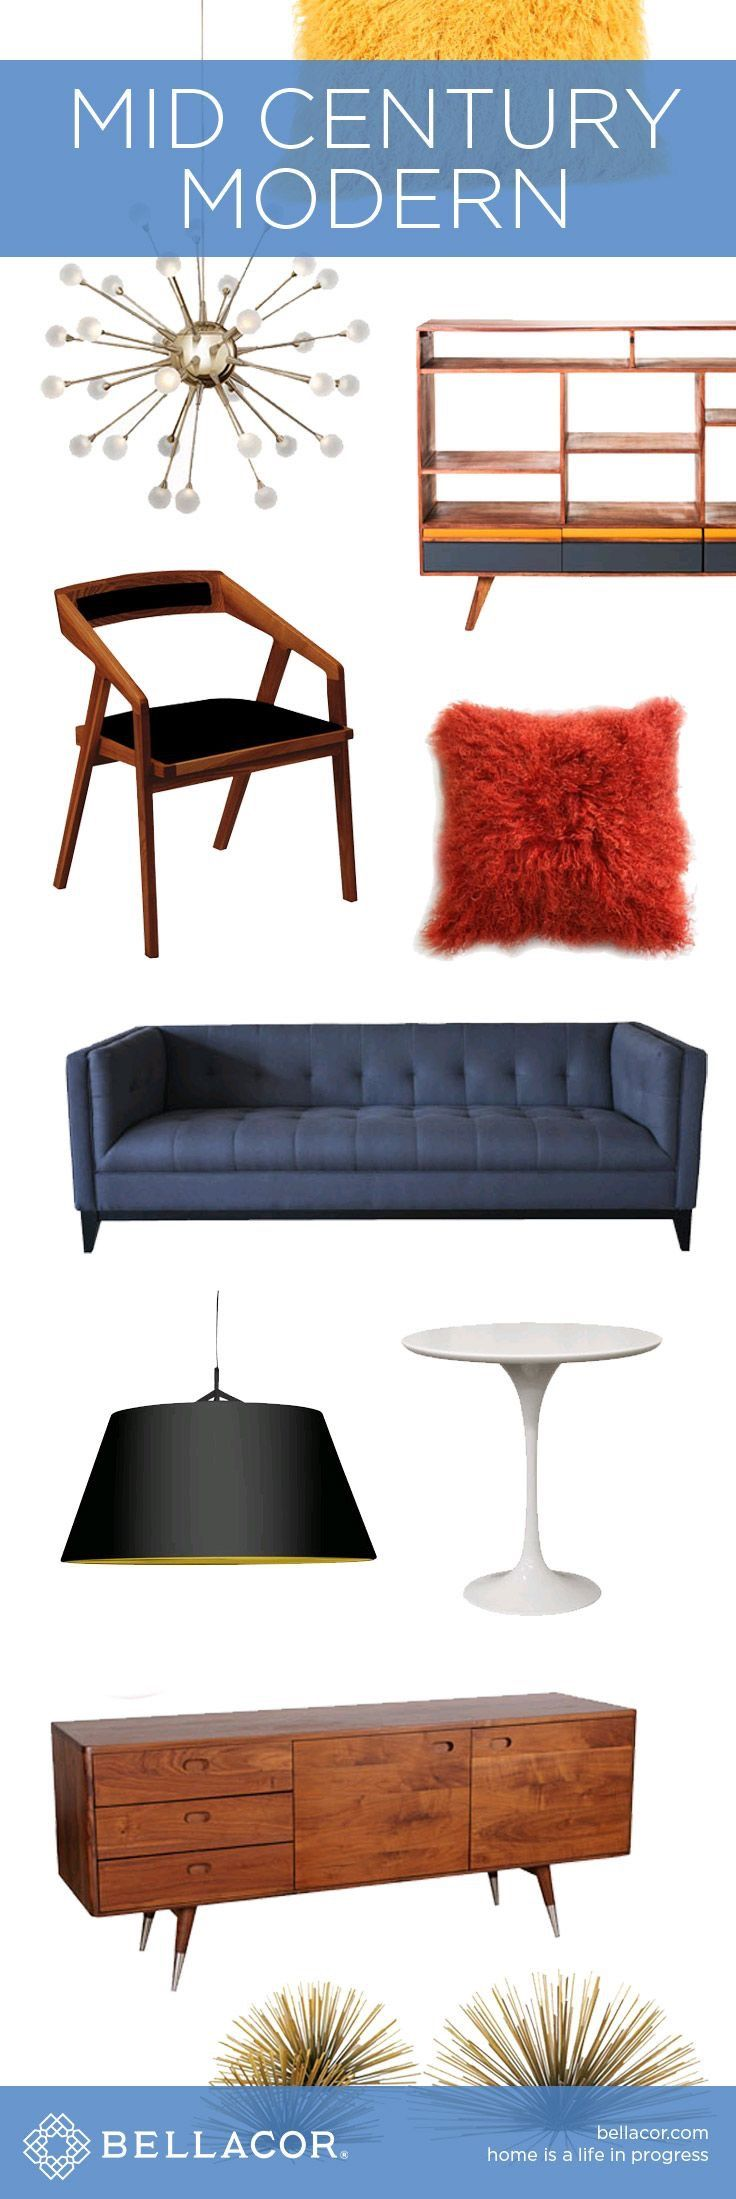 Knoll life chair geek - Save On Mid Century Modern At Bellacor Shop With Confidence Price Match Guarantee Hundreds Of Brands Ship Free Control Brand Moe S Home Collection